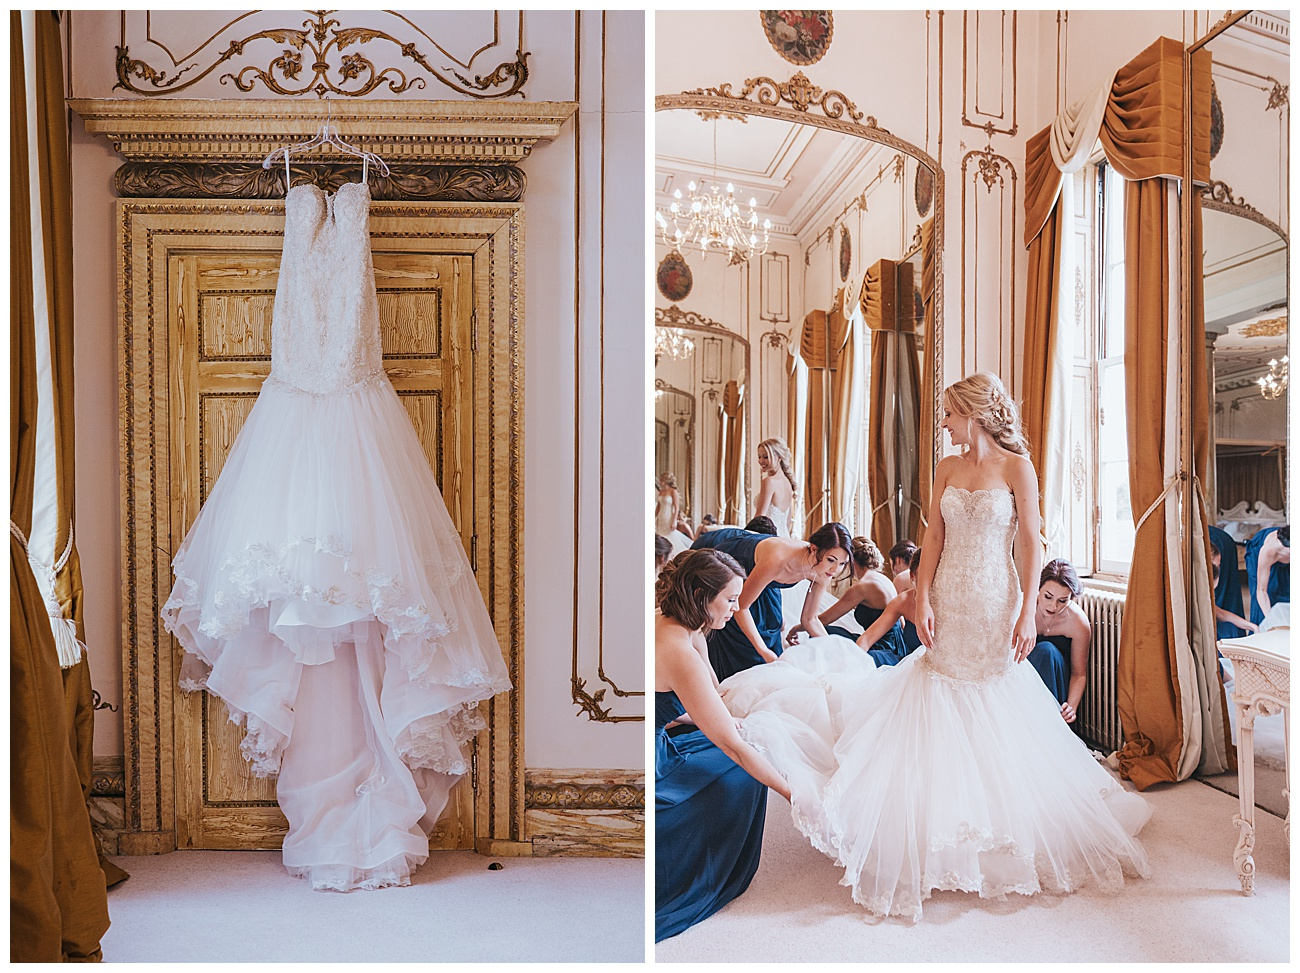 Picture of the hanging wedding dress and the bridesmaids fluff the dress for the bride next to a large mirror